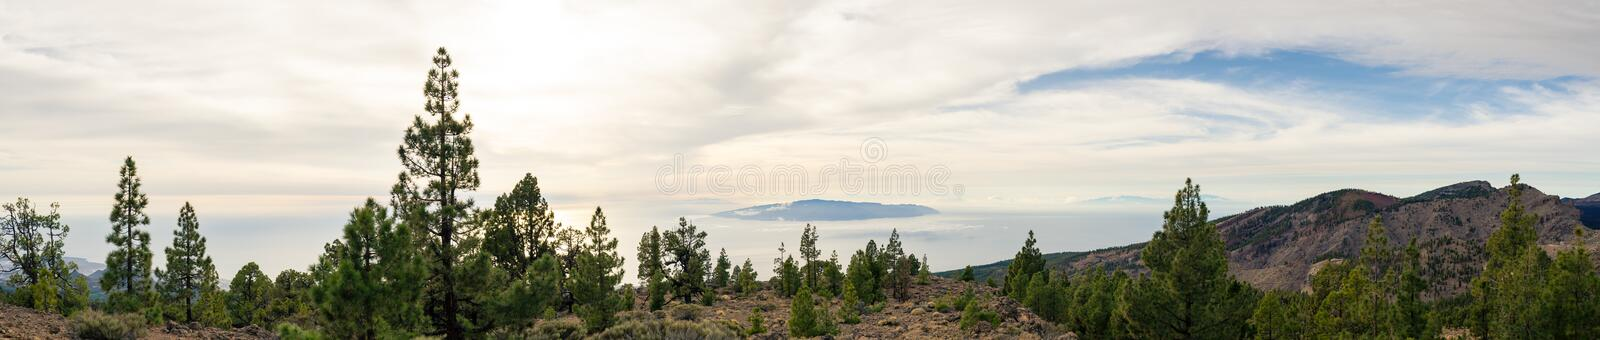 Inspiring Mountains Landscape, islands and ocean. Inspirational Mountains Landscape on Tenerife, Canary Islands, La Gomera Island stock photo